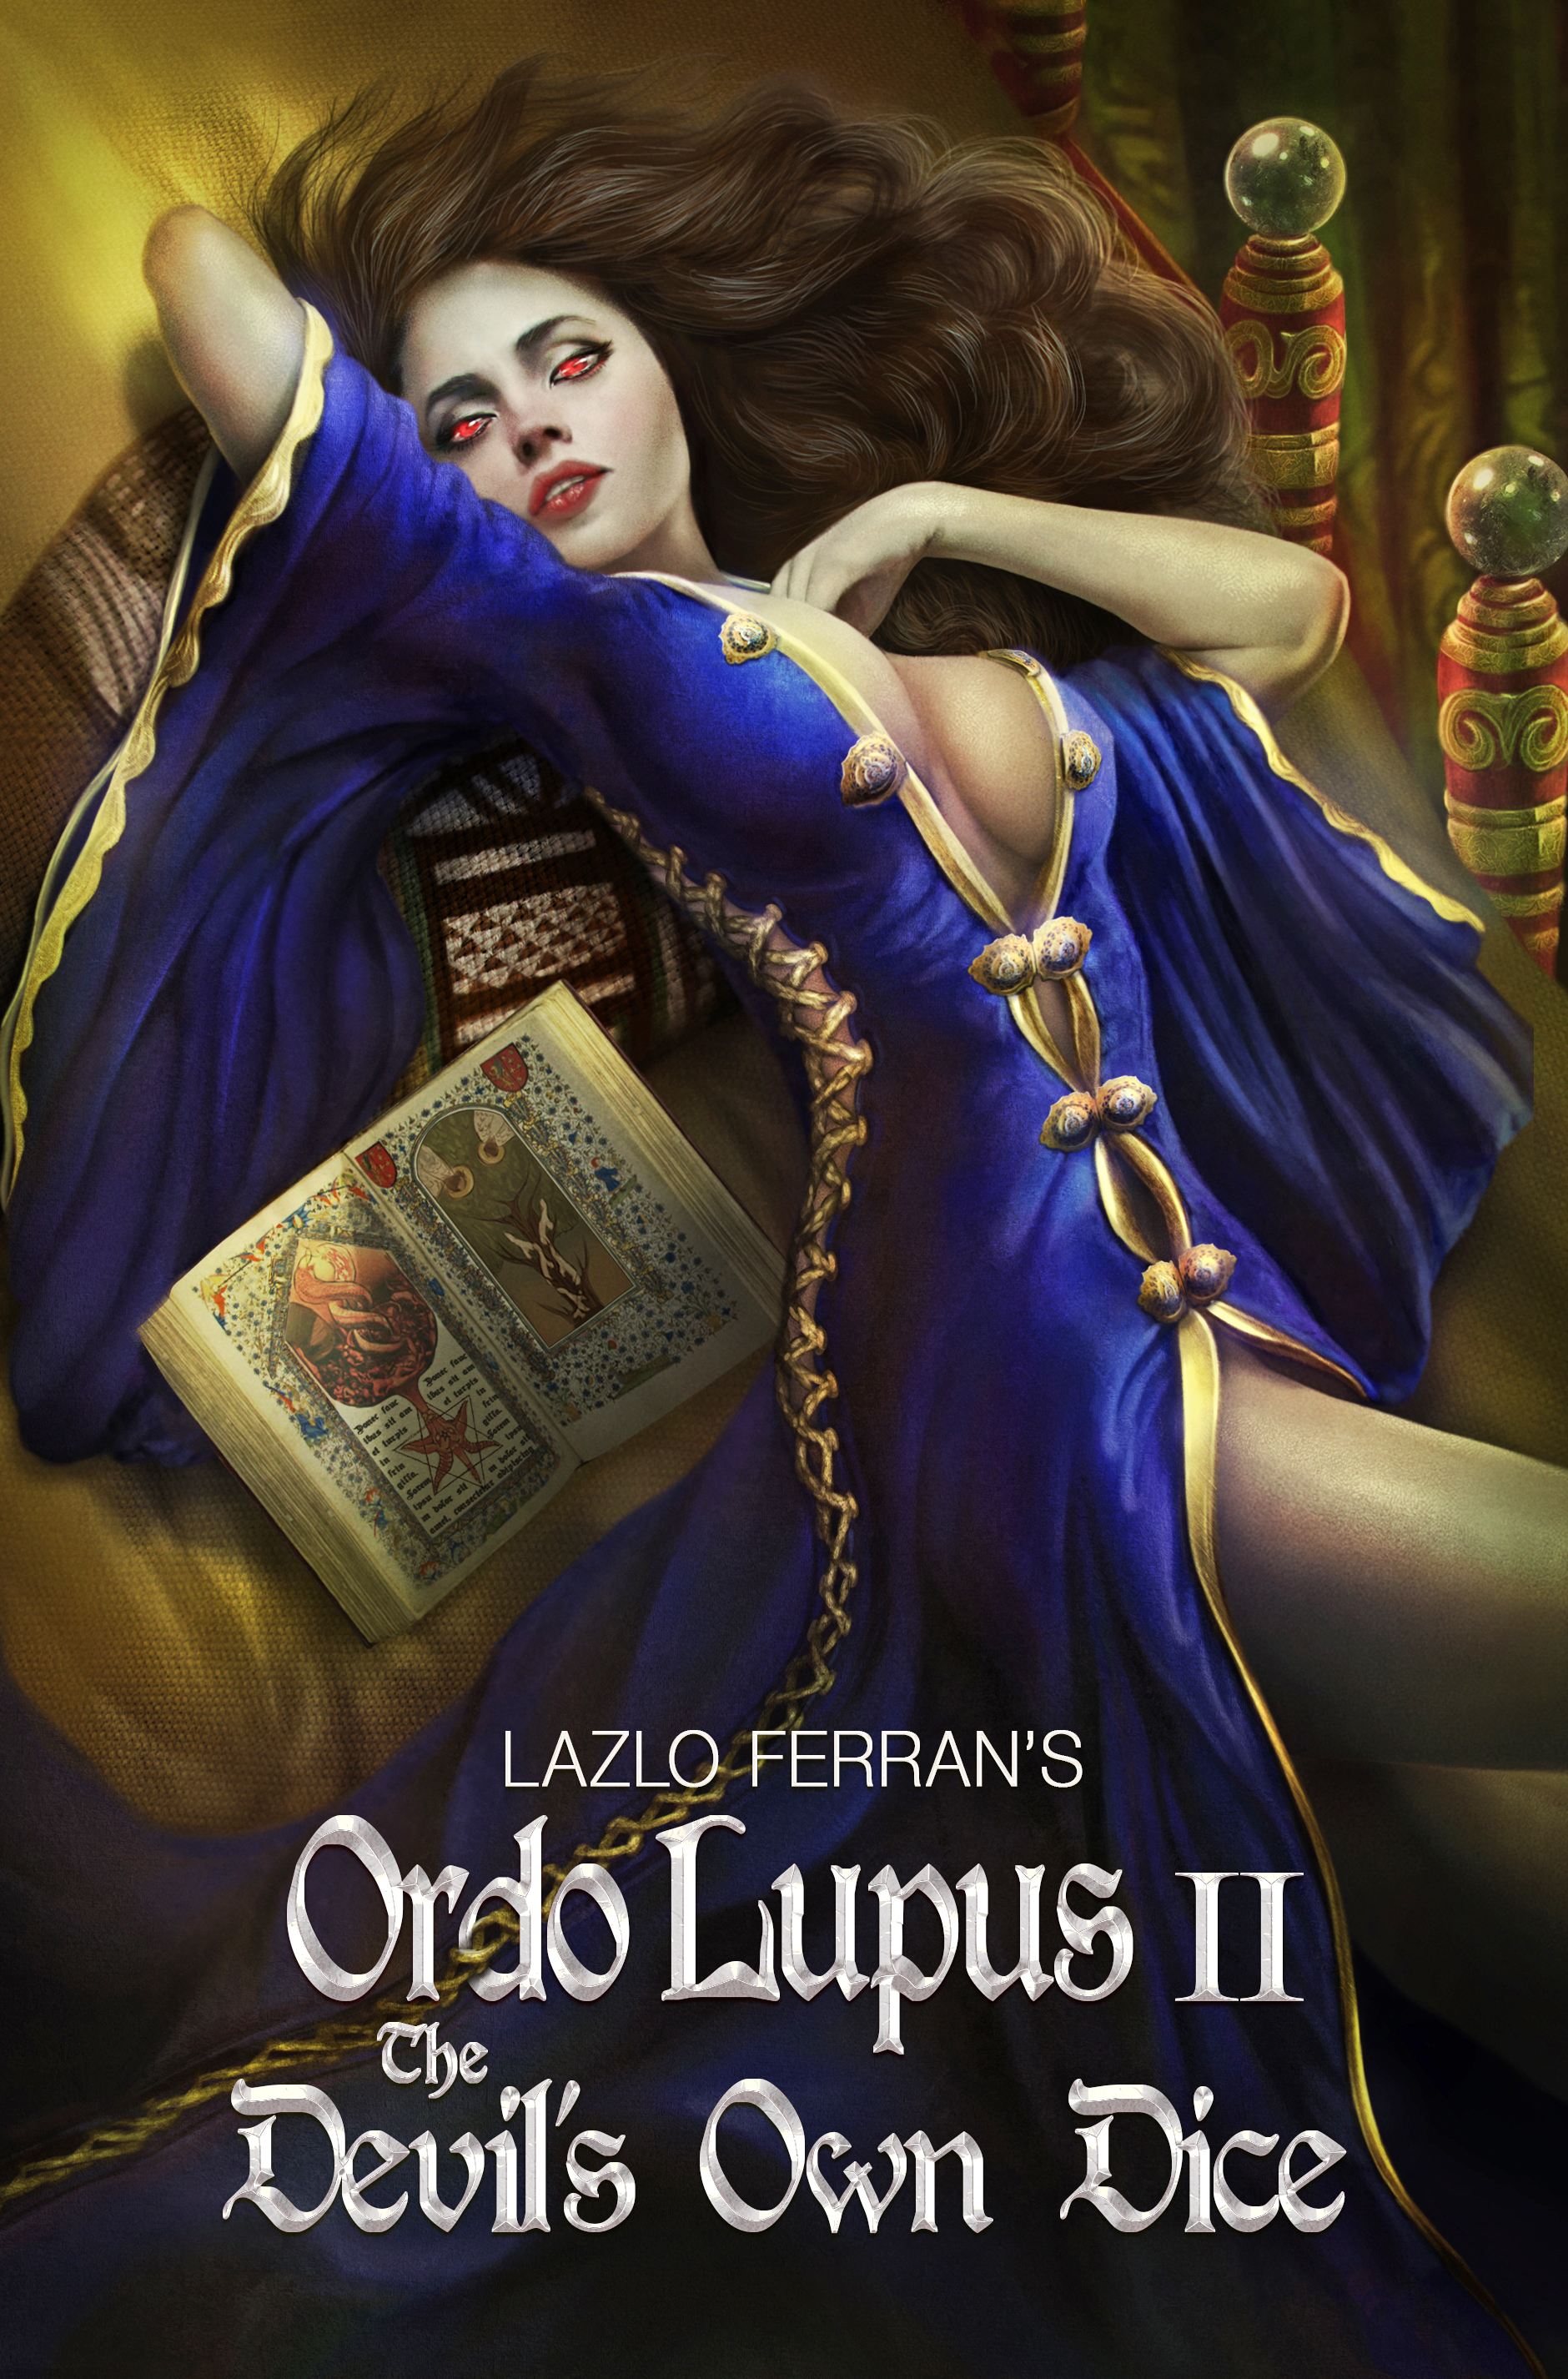 Lazlo Ferran - Ordo Lupus II: The Devil's Own Dice (An Ex Secret Agent Paranormal Investigator Thriller) Volume 2 of the Ordo Lupus and the Blood Moon Prophecy Series